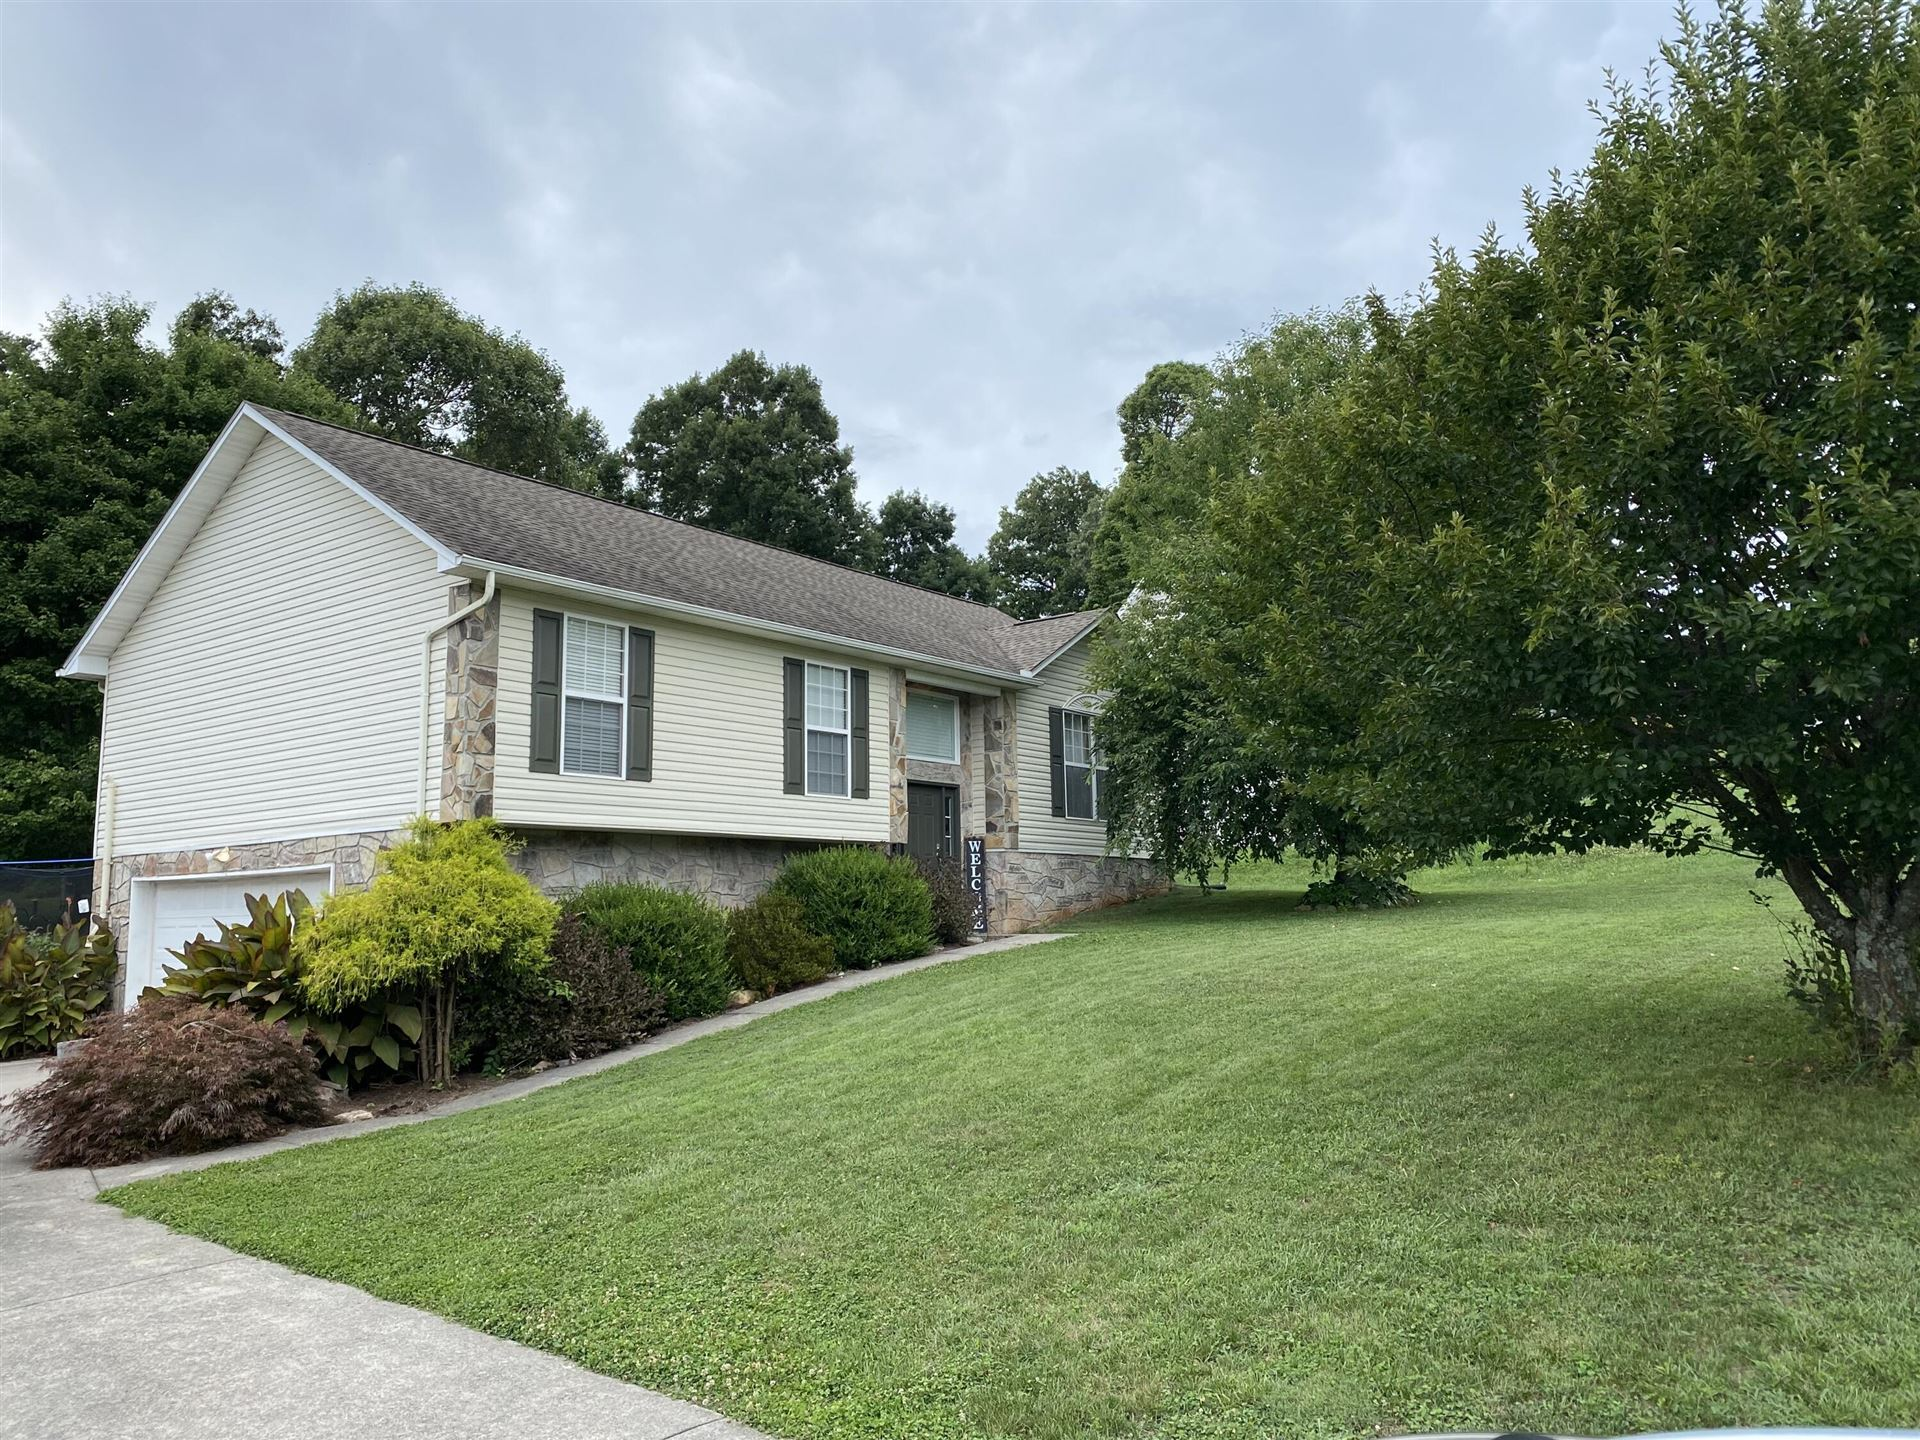 Photo of 1425 Chessingham Drive, Maryville, TN 37801 (MLS # 1160920)